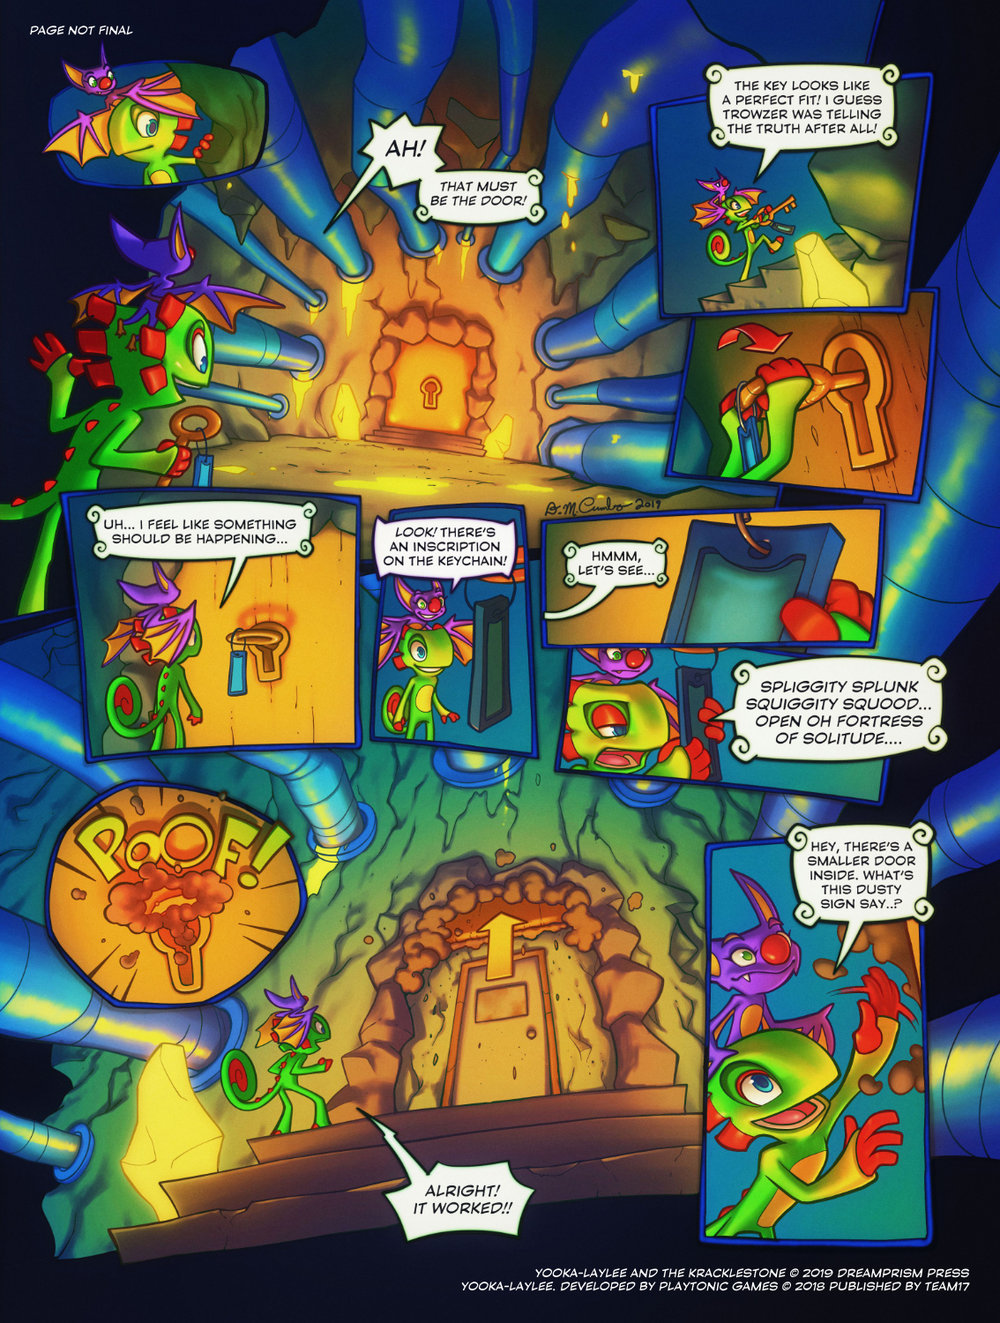 Yooka-Laylee and the Kracklestone Dreamprism Press 2.jpg